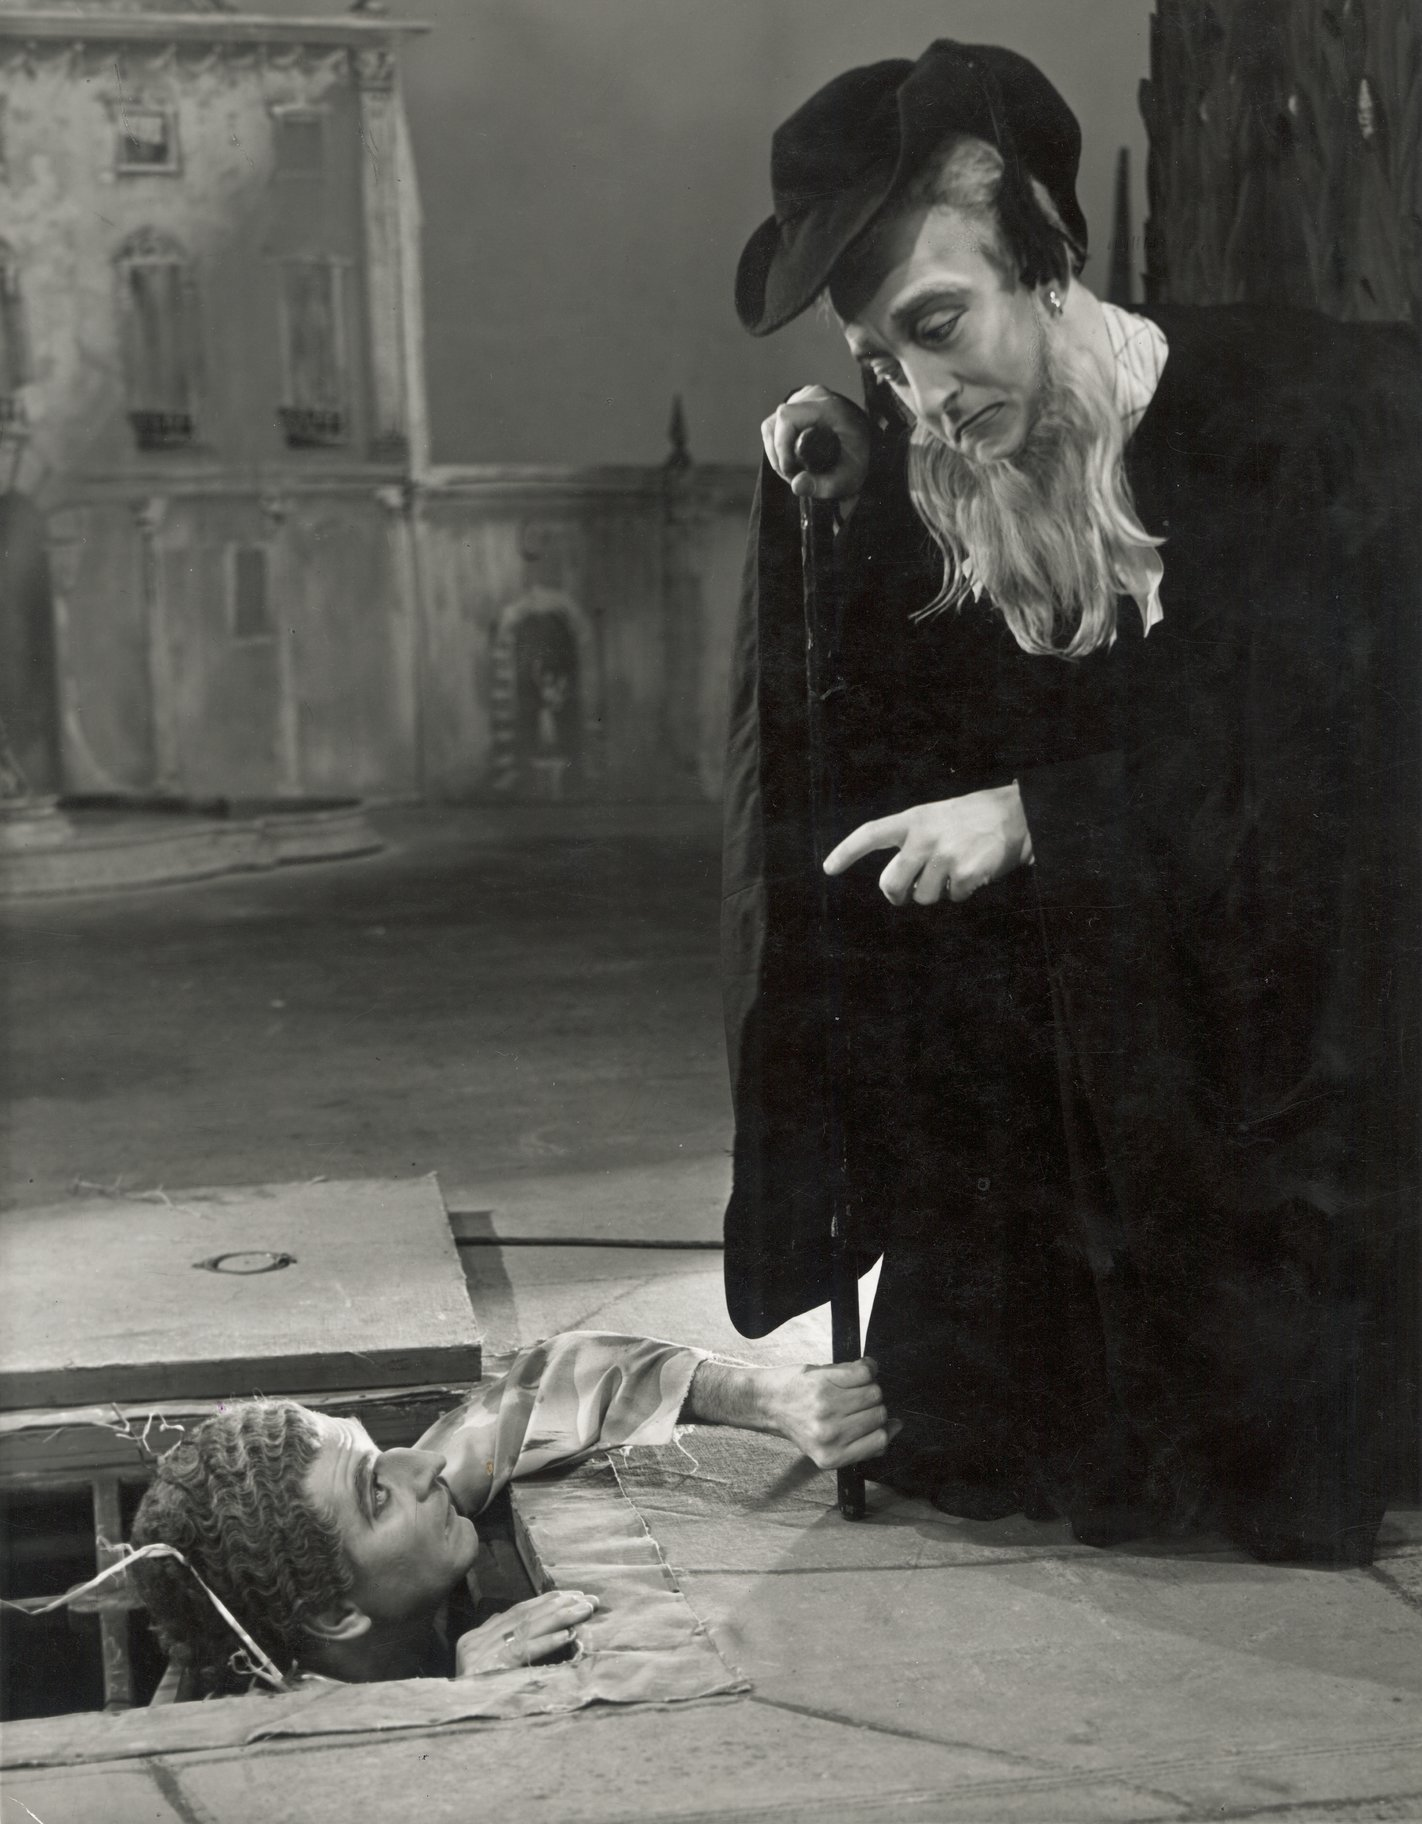 Feste dressed as a priest talks down to Malvolio who reaches out from a hole in the ground in the 1955 production of Twelfth Night.